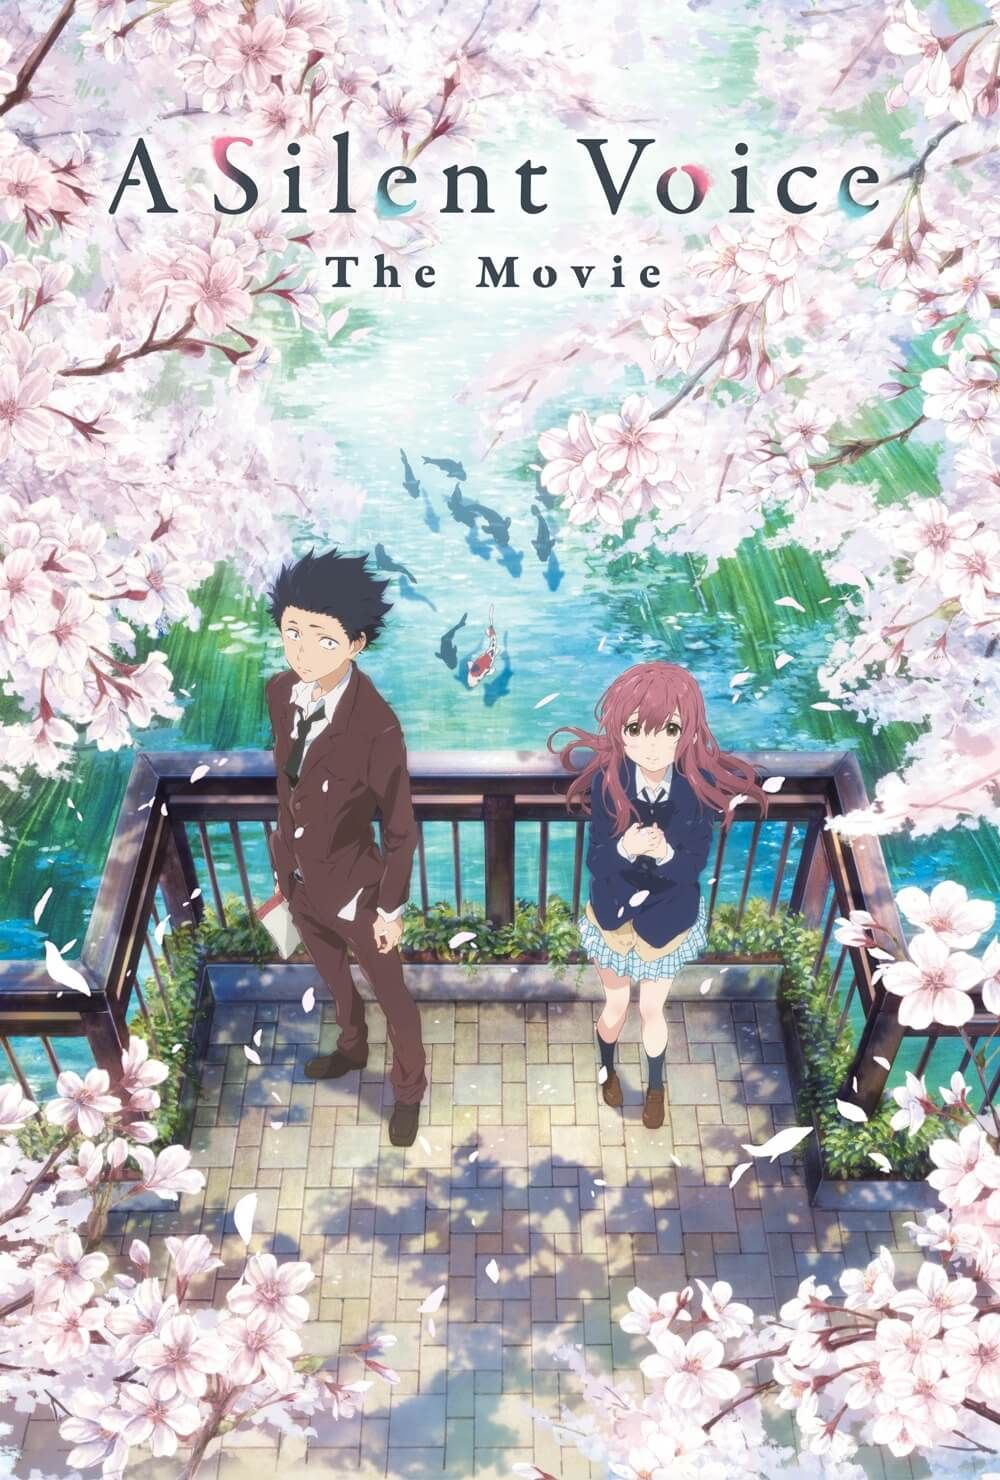 2019 Anime Japanese Films Coming To U S Theaters Anime Films